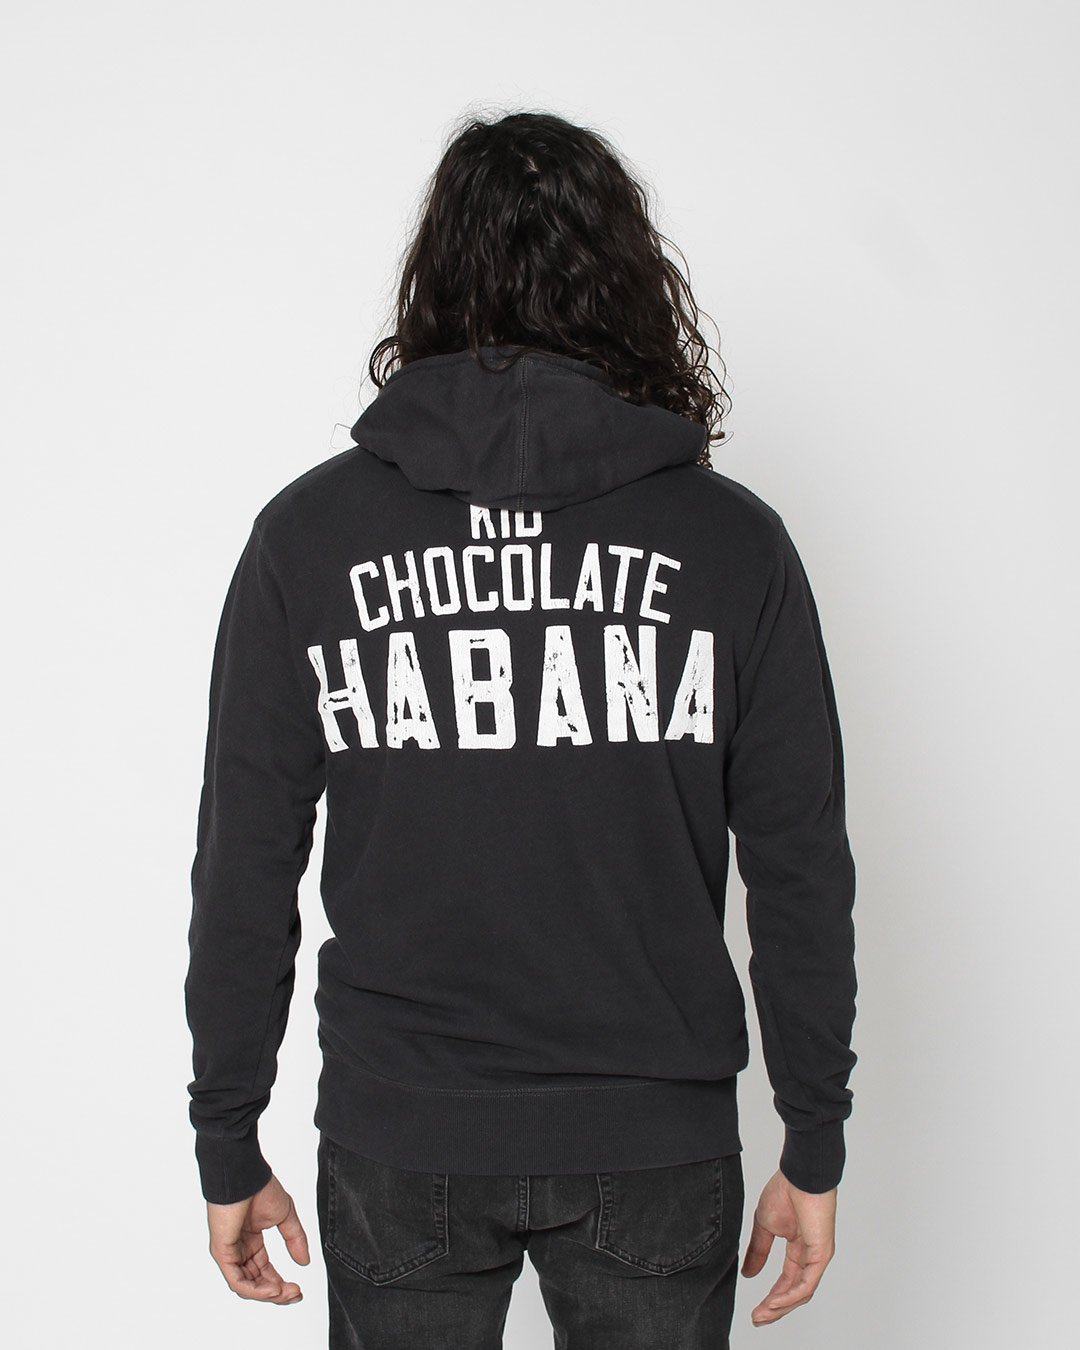 Kid Chocolate Habana Pullover Hoody - Copasetic Clothing Ltd. dba Roots of Fight